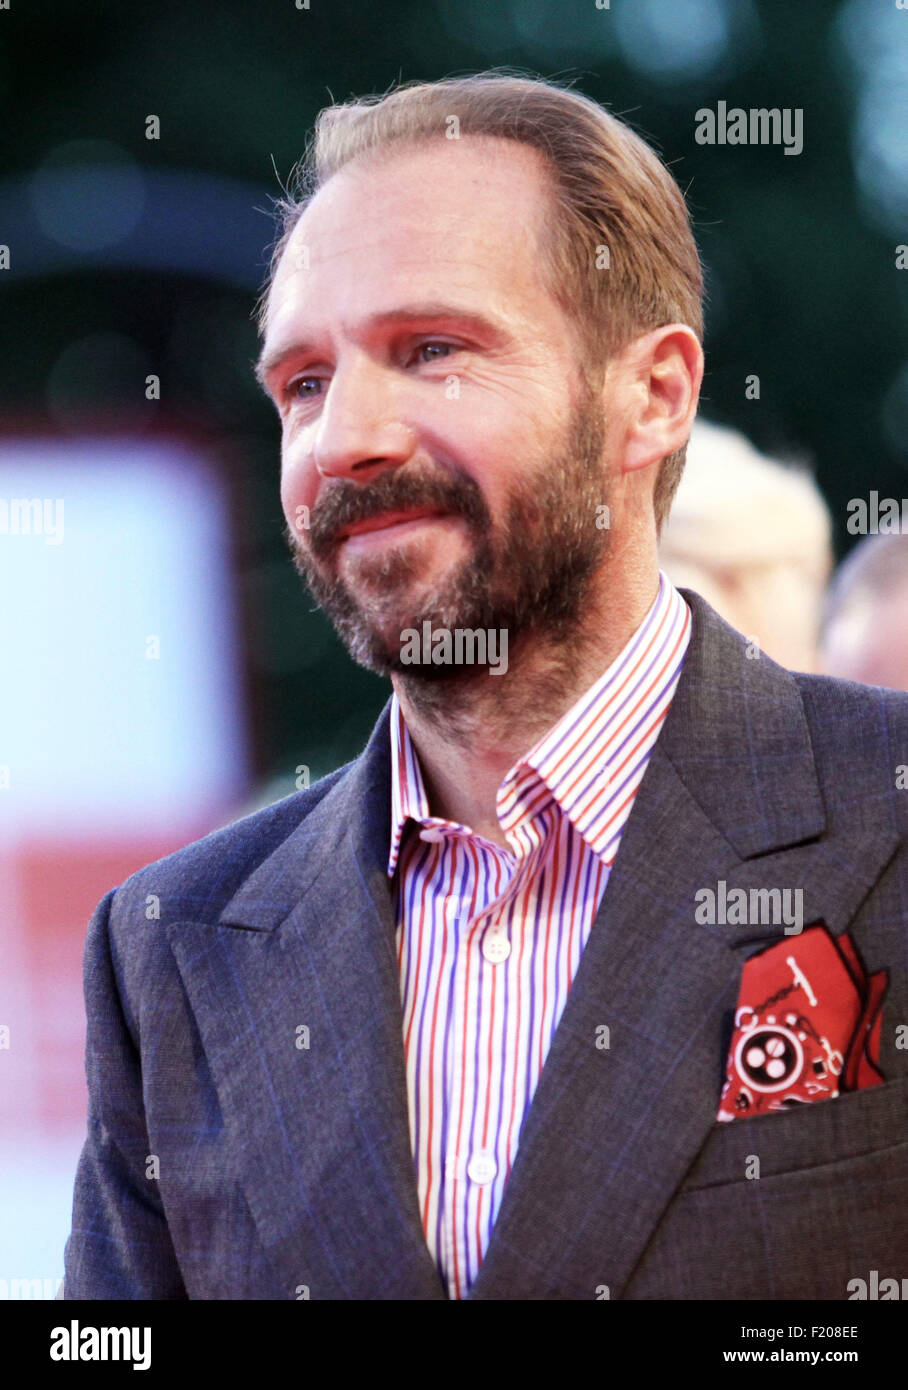 Actor Ralph Fiennes at the red carpet of the movie 'A Bigger Splash' (director Luca Guadagnino) presented - Stock Image